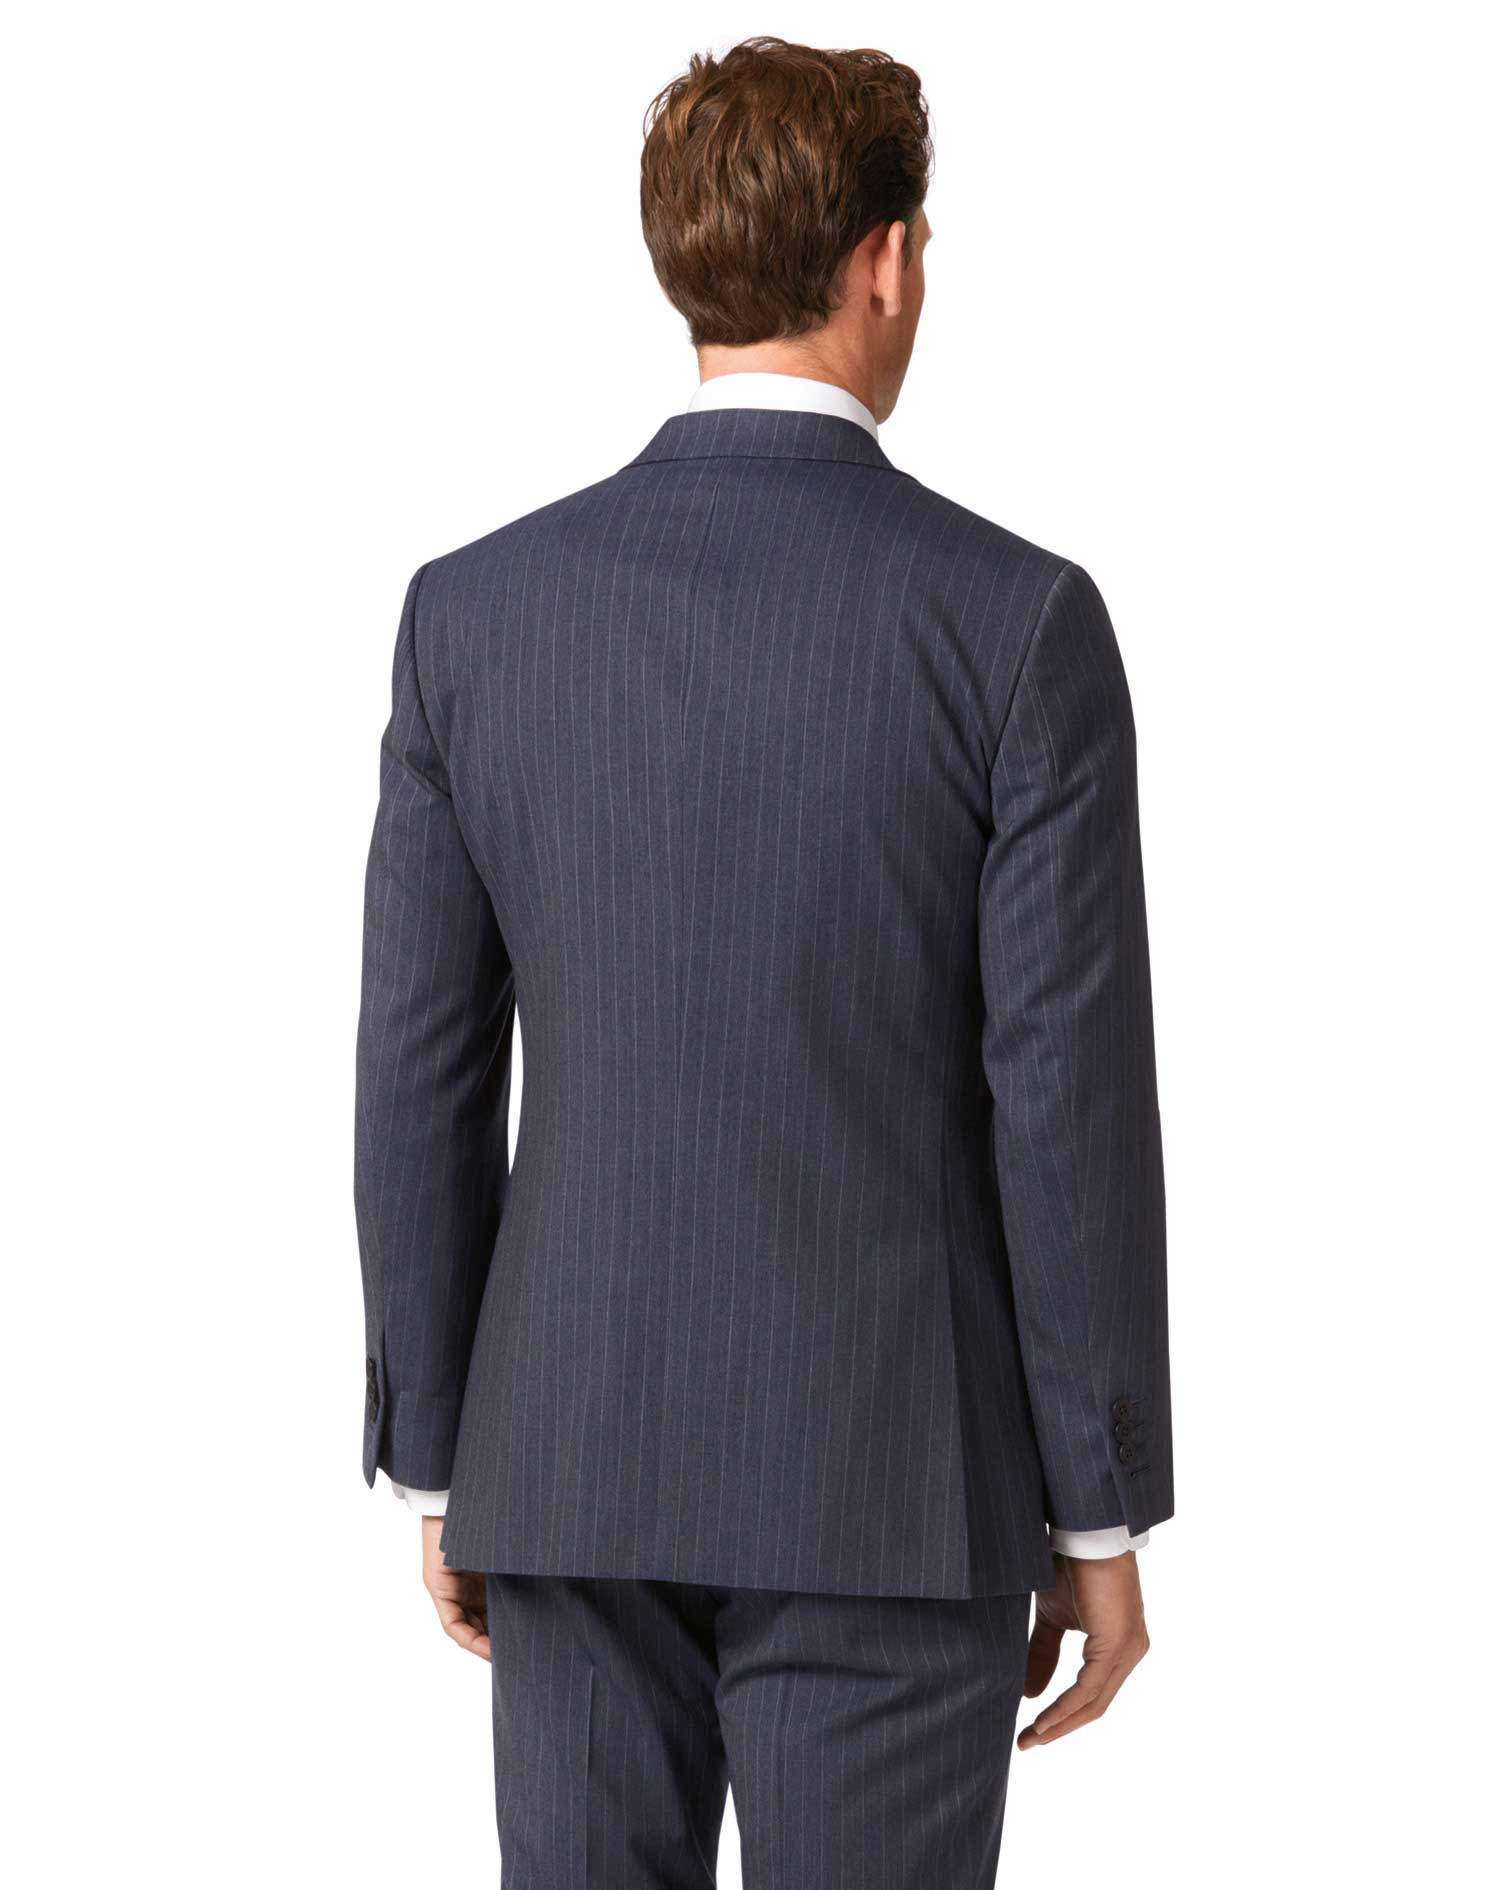 Airforce stripe slim fit Panama business suit jacket